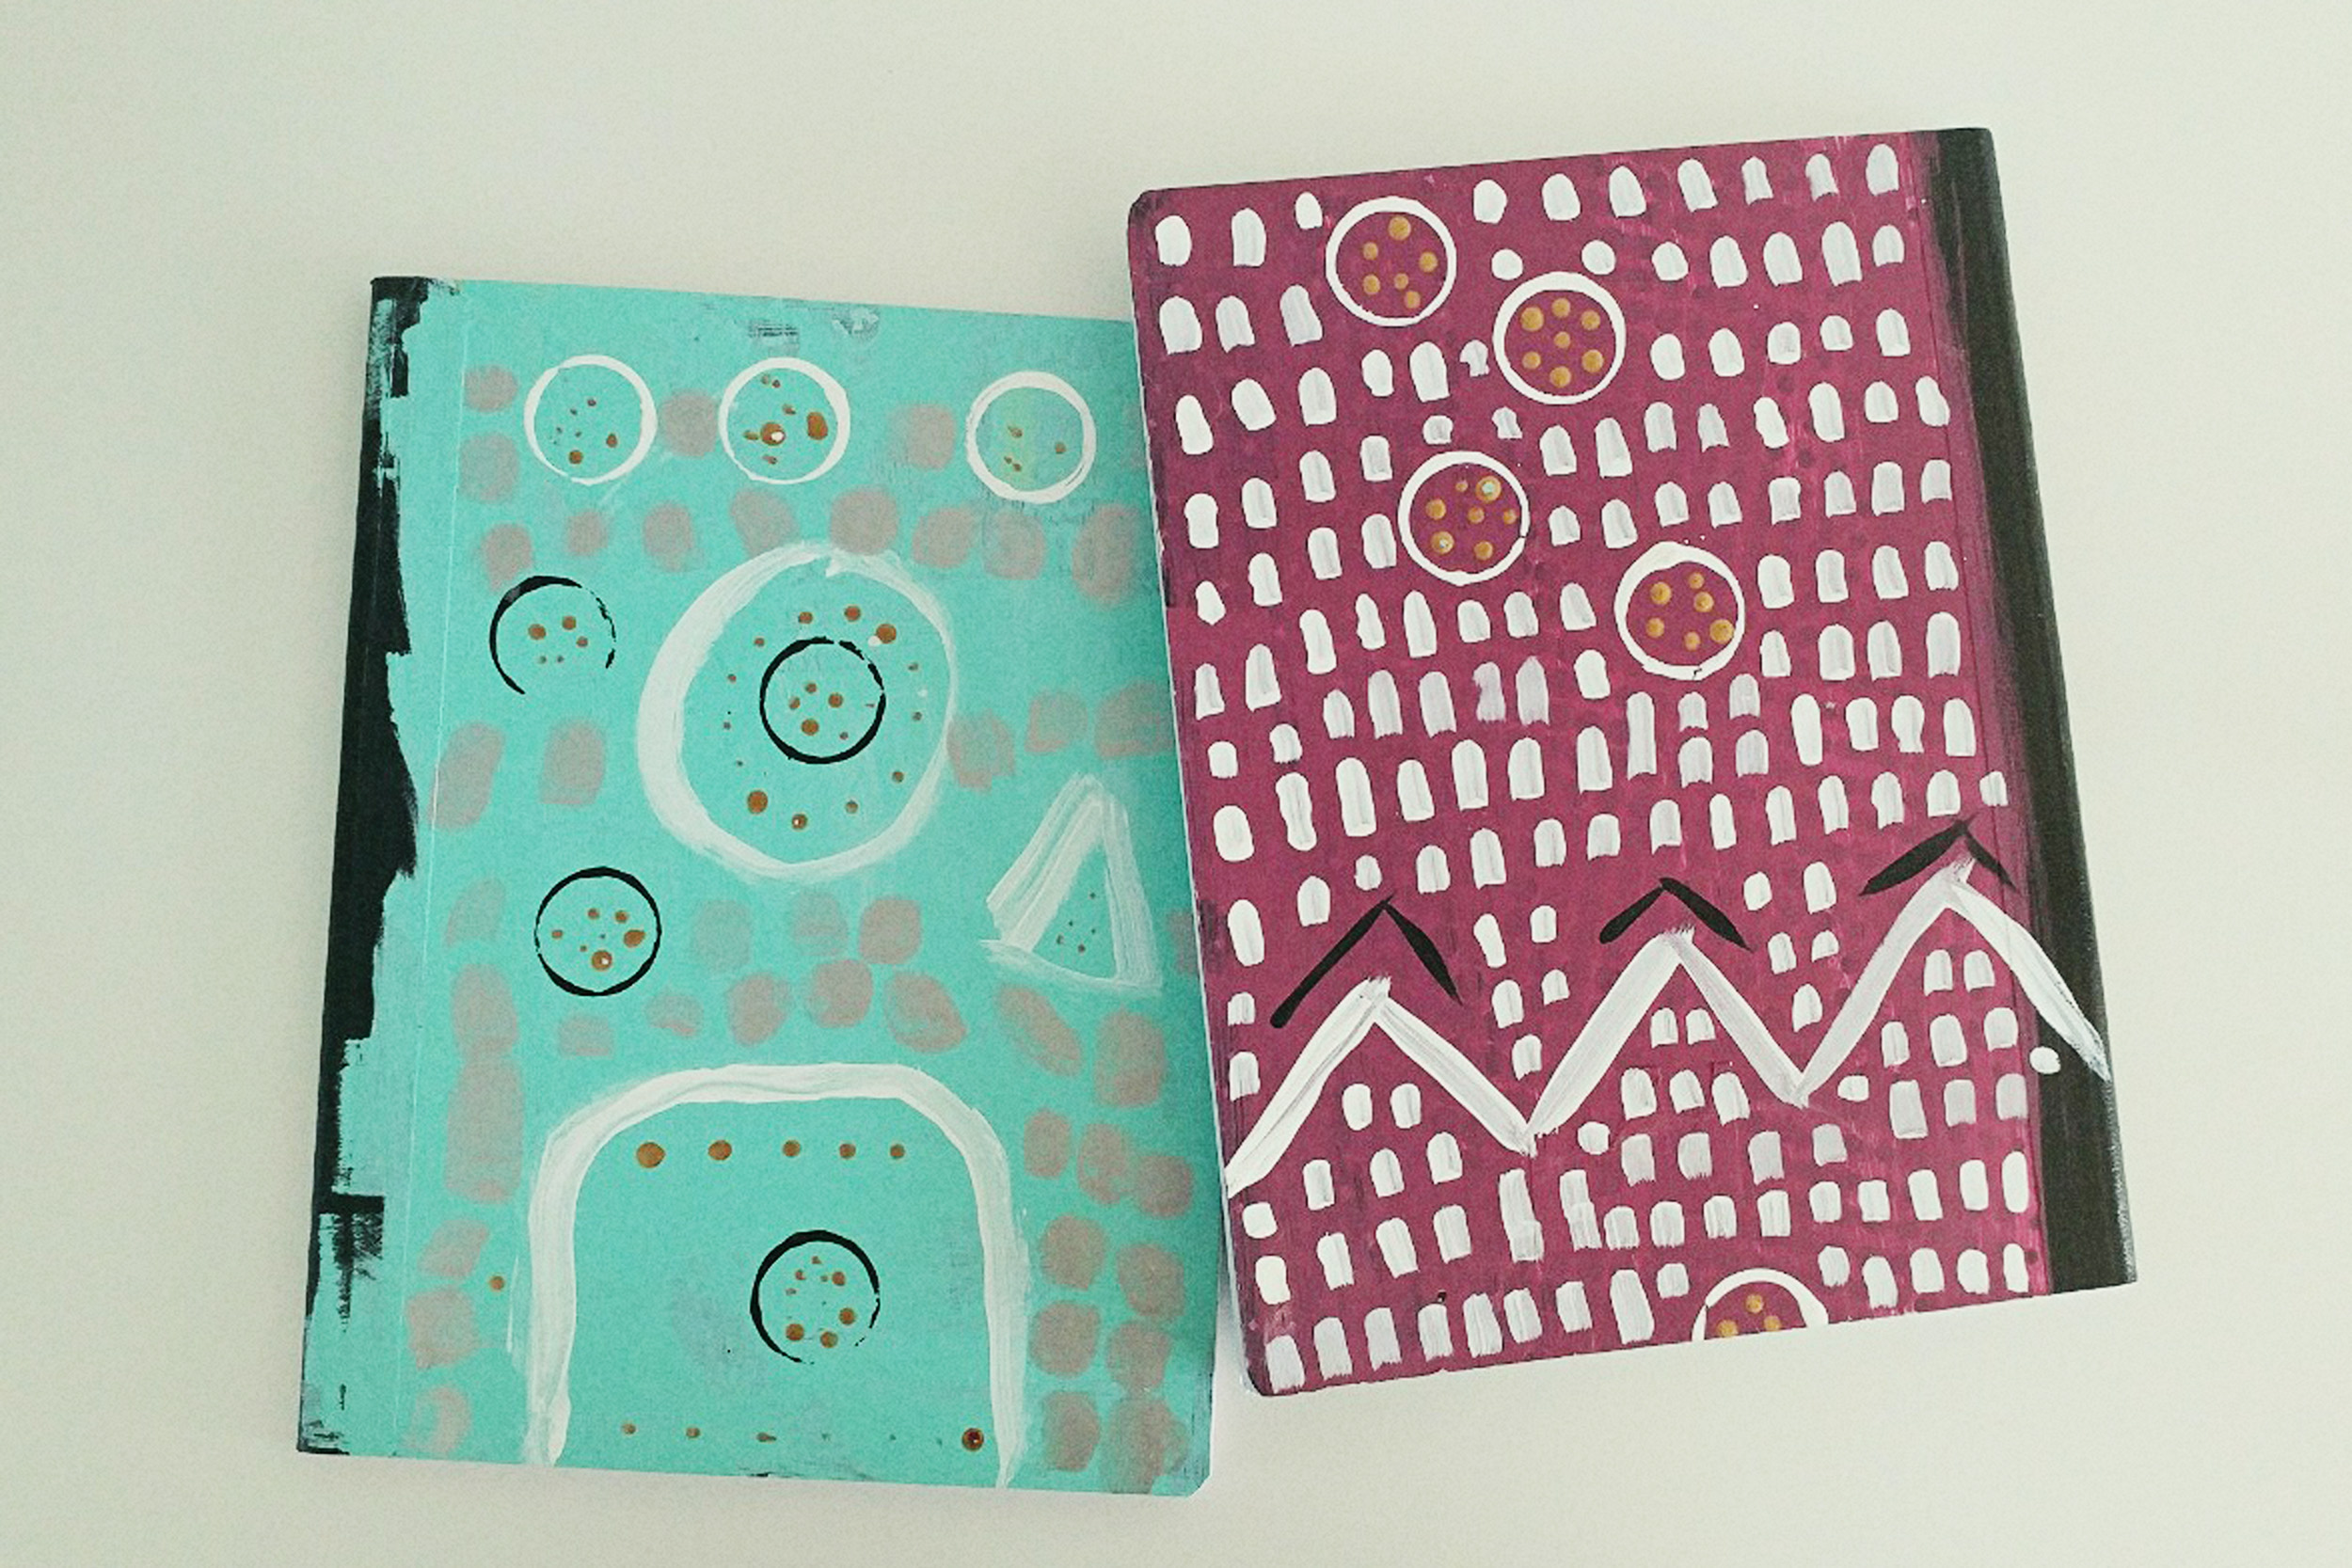 Customized Composition Notebooks for our homeschool work.